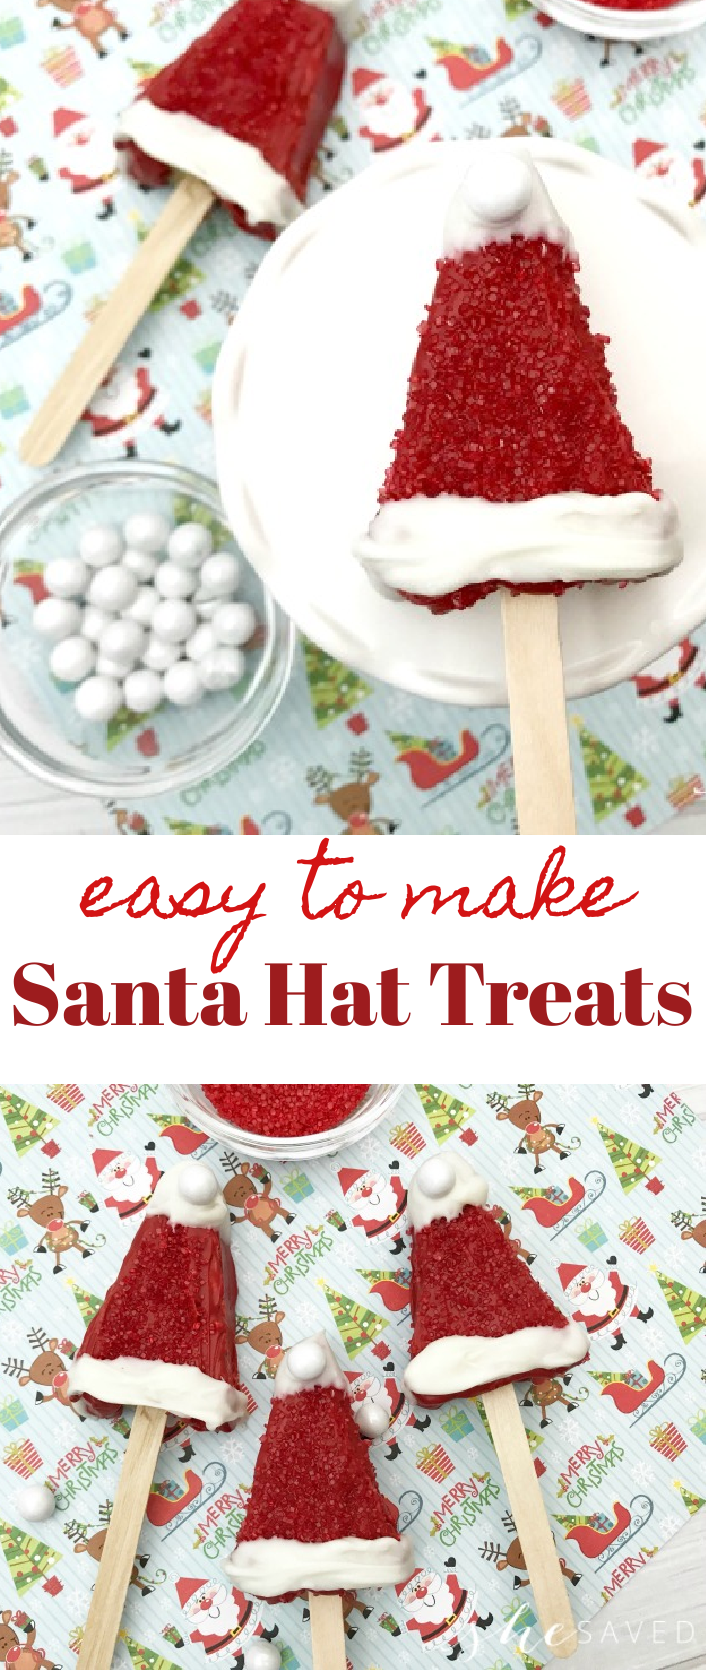 Santa Hat Treats made with Rice Krispies